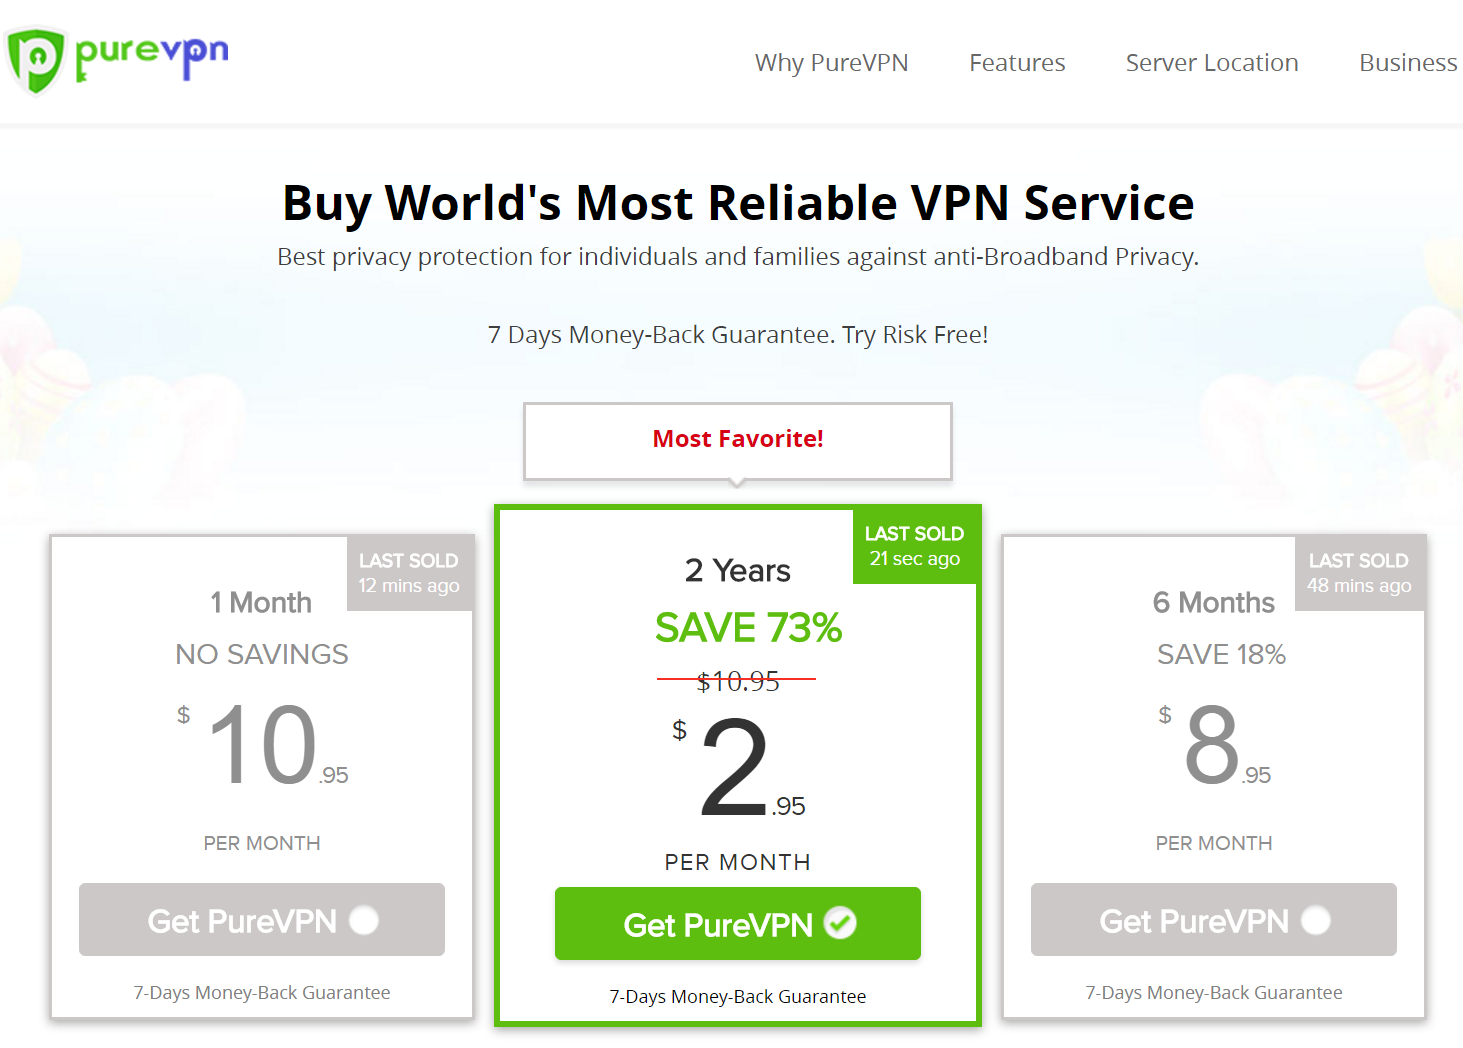 how to order purevpn